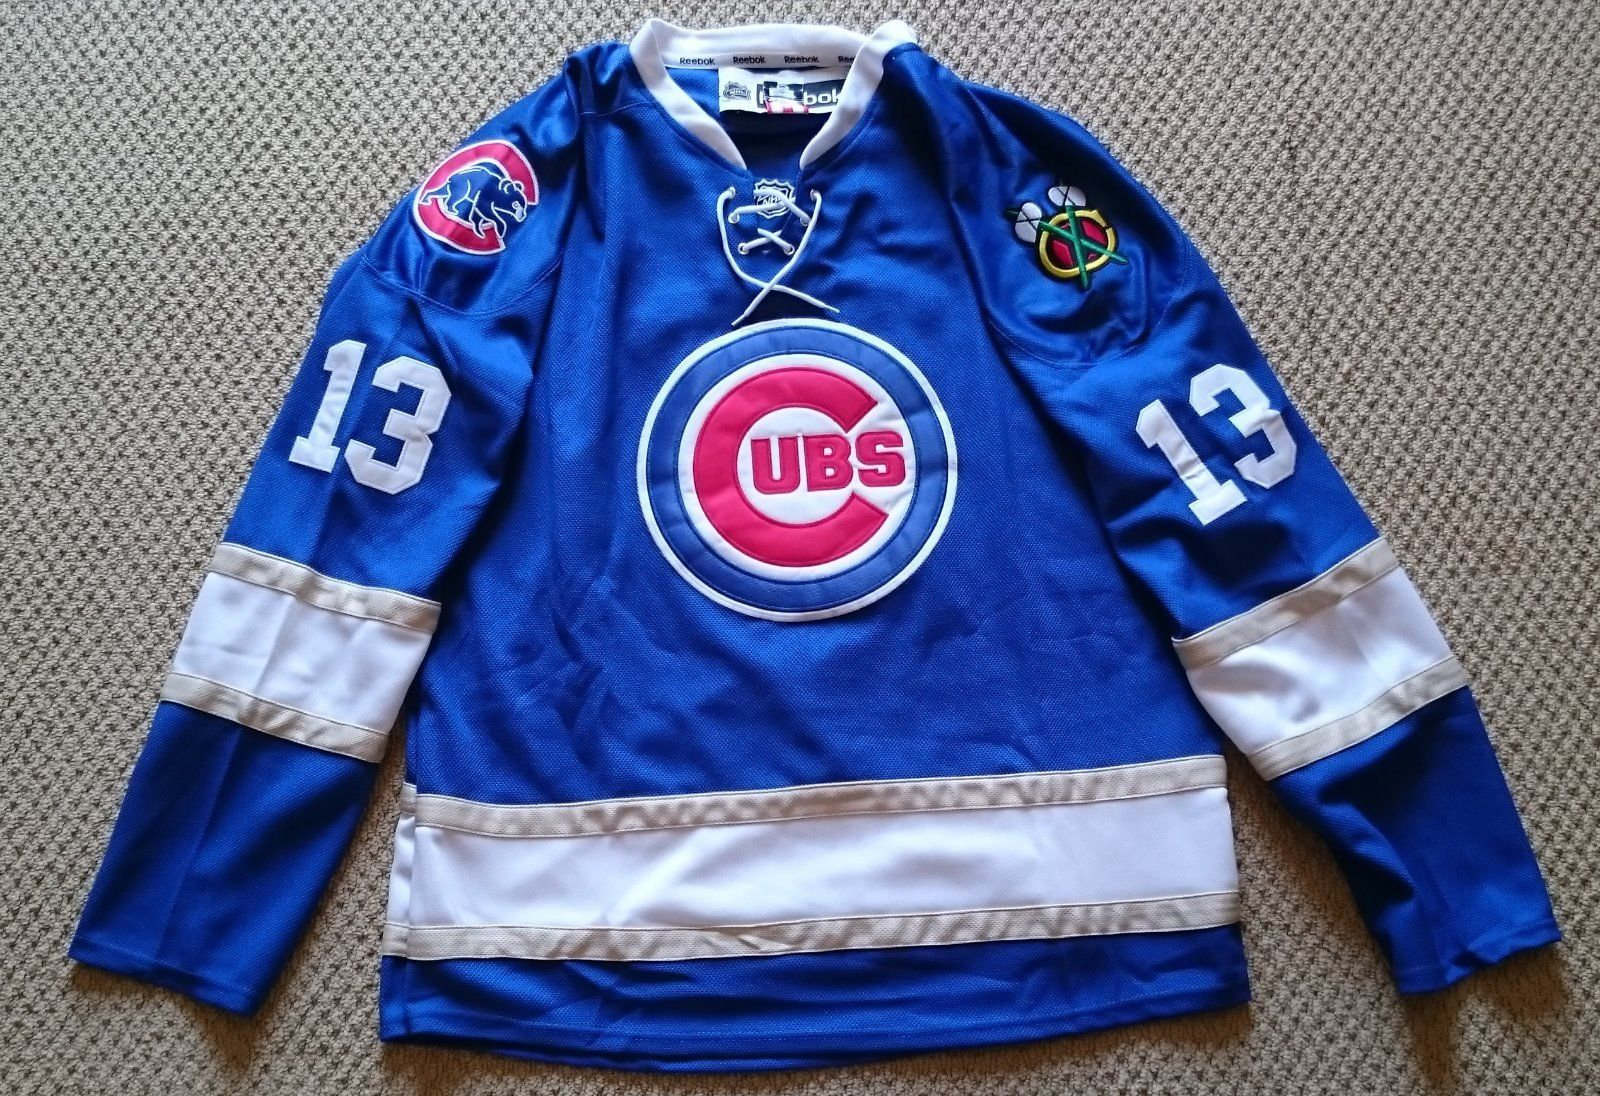 Brand New NHL Replica Chicago Cubs Hockey Jerseys.Any name,and number you want